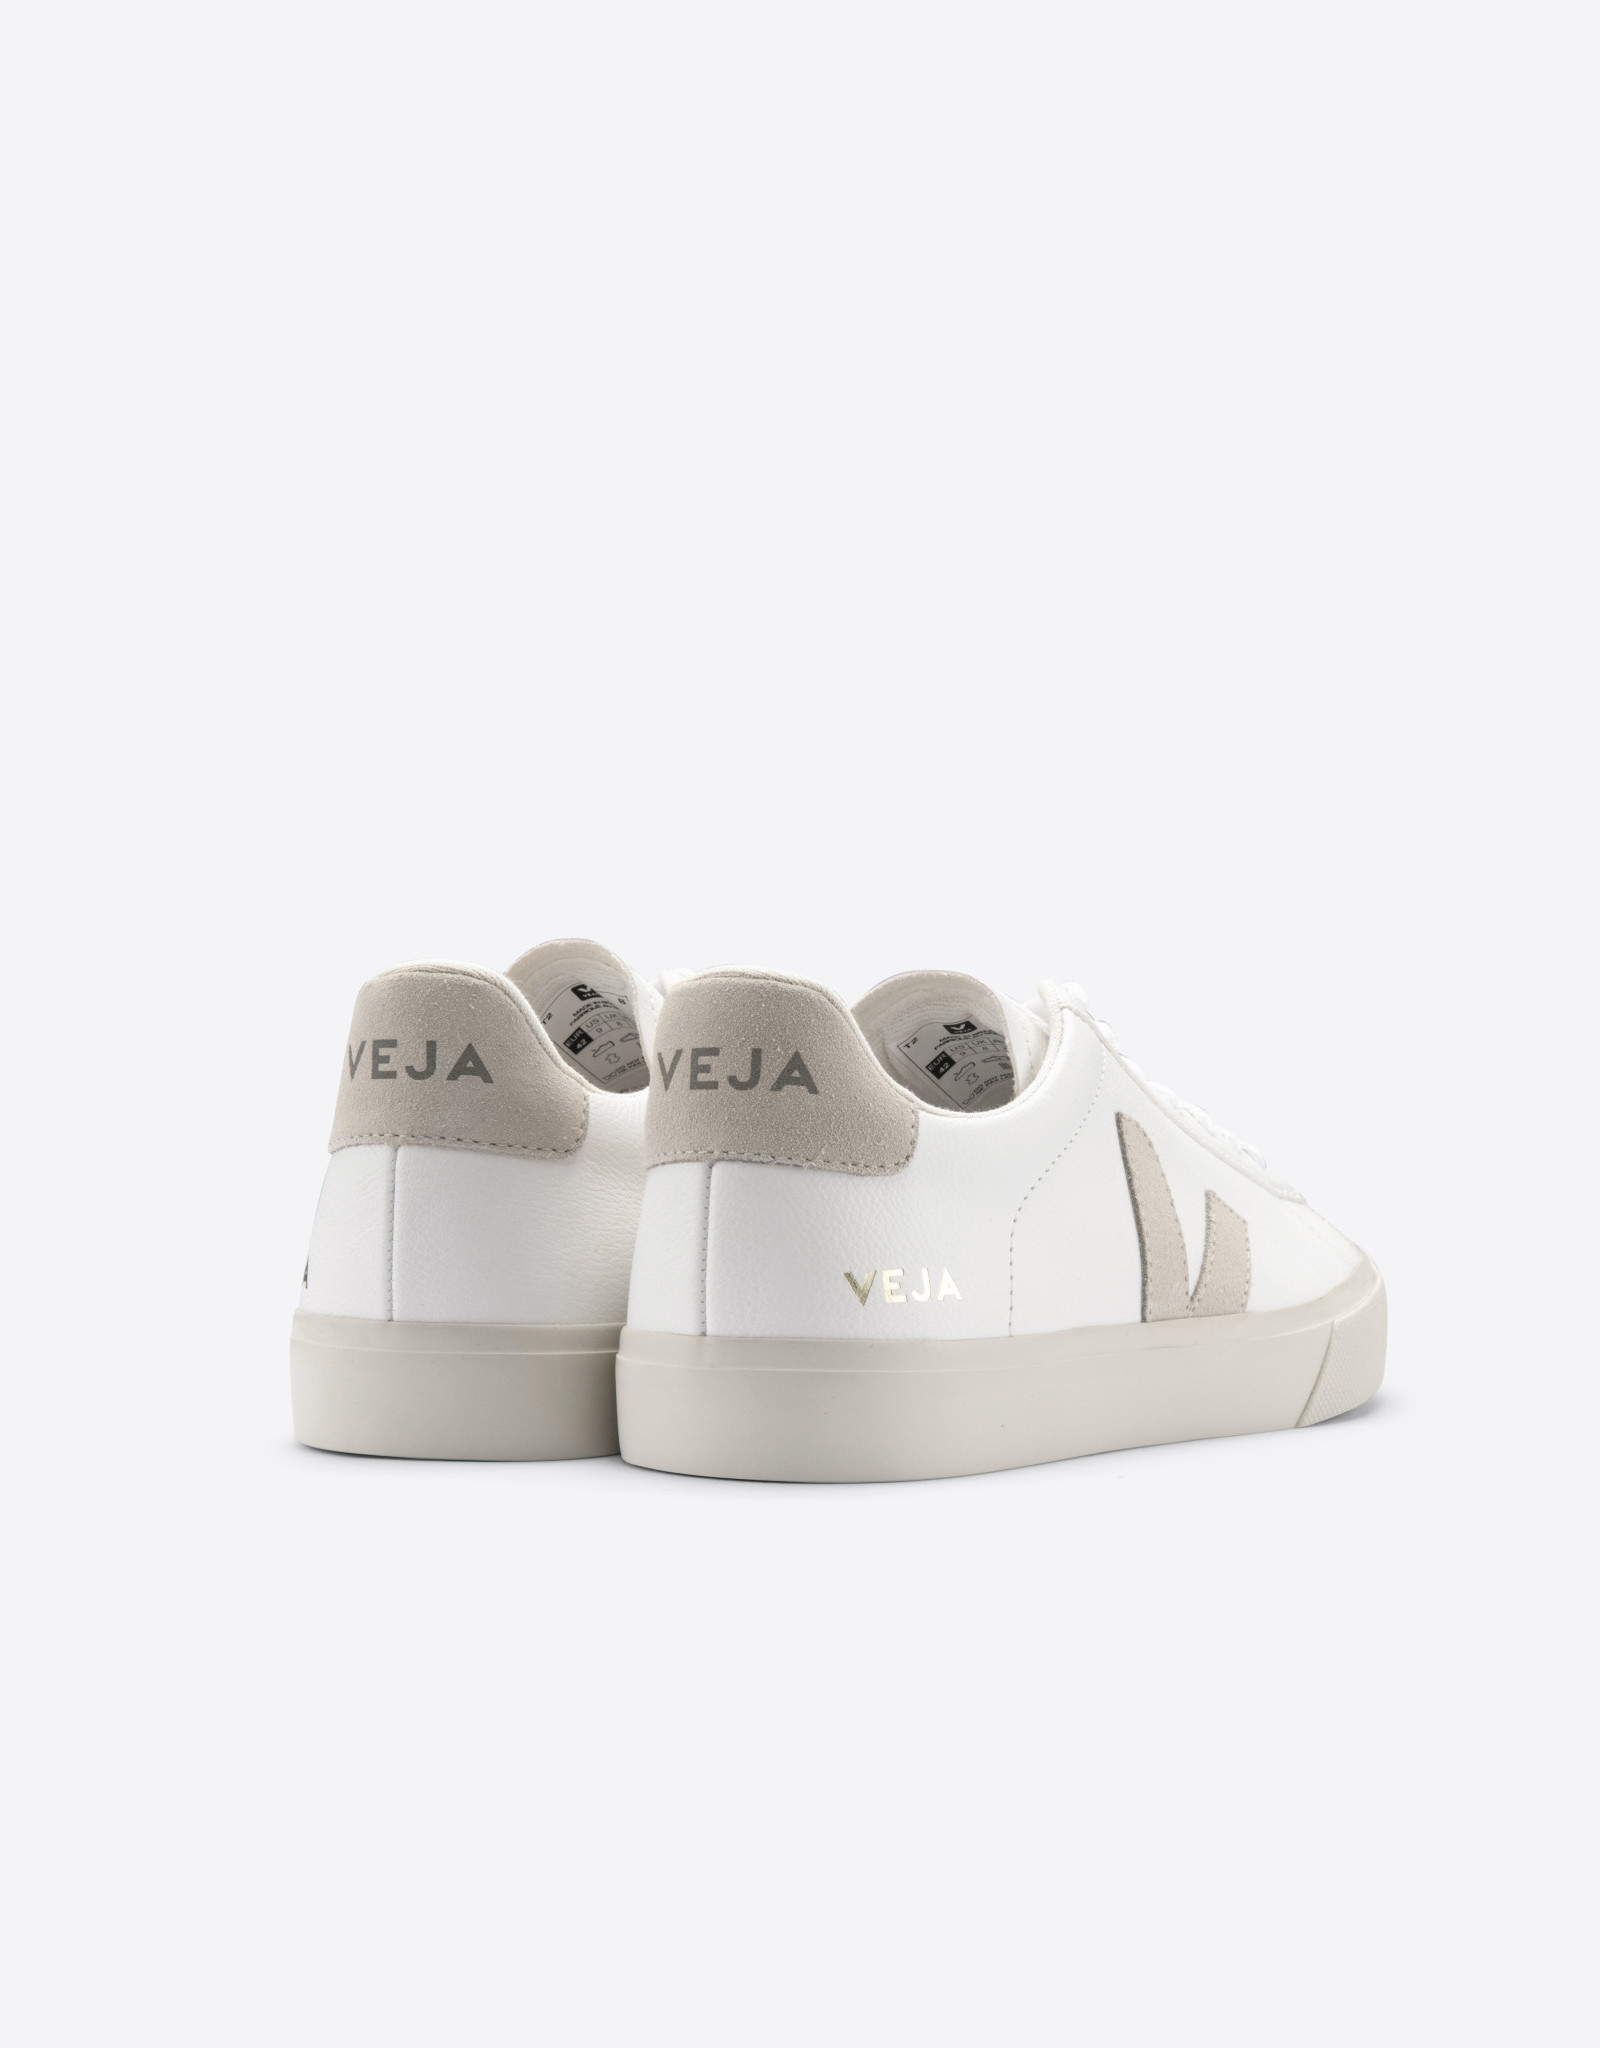 Veja CAMPO CHROMEFREE EXTRA-WHIITE_NATURAL-SUEDE WOMEN